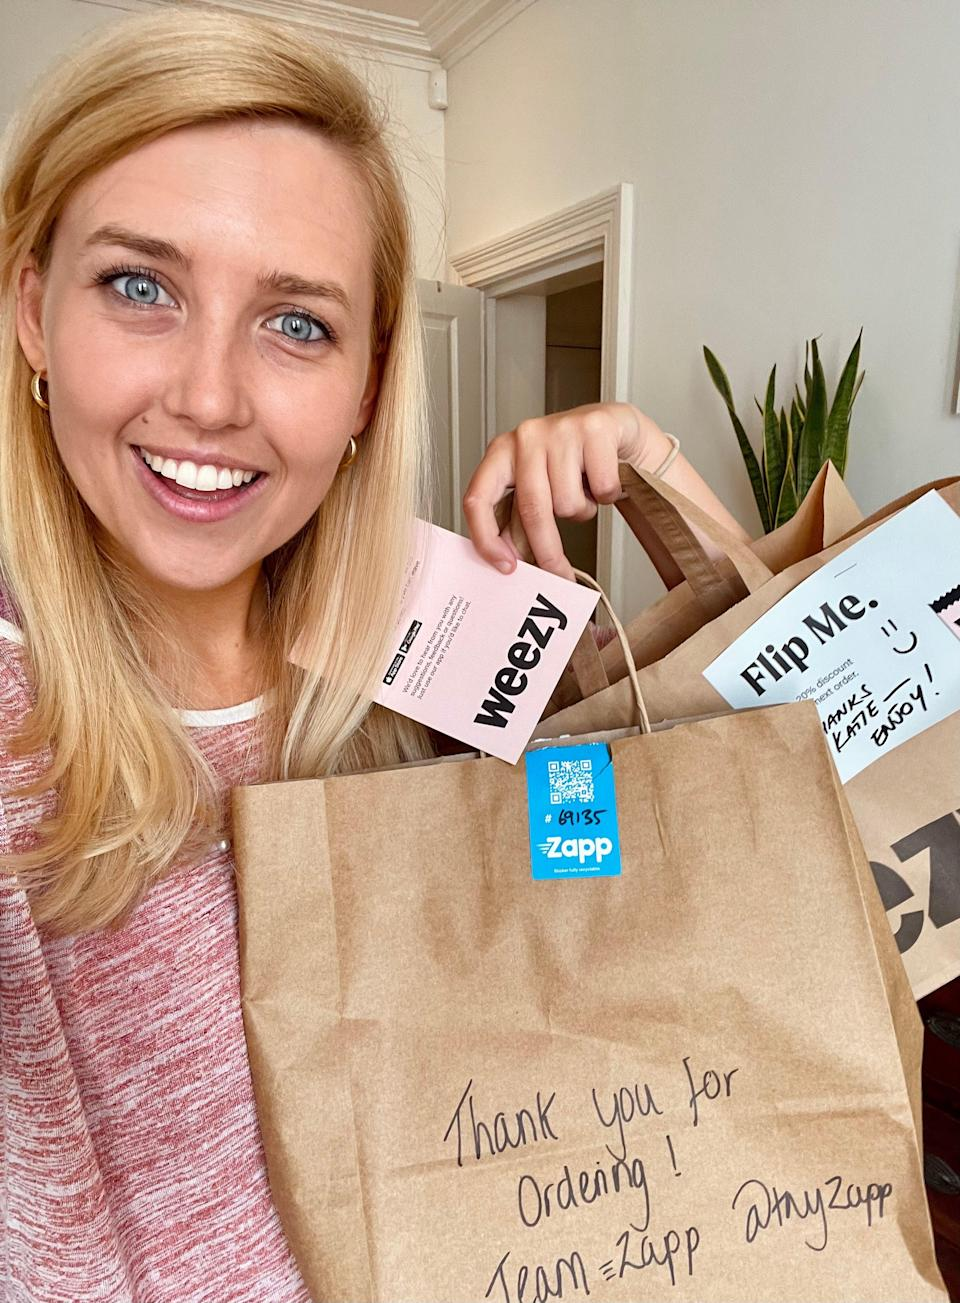 Katie Strick road-tests London's new ultra-fast grocery apps (Katie Strick)